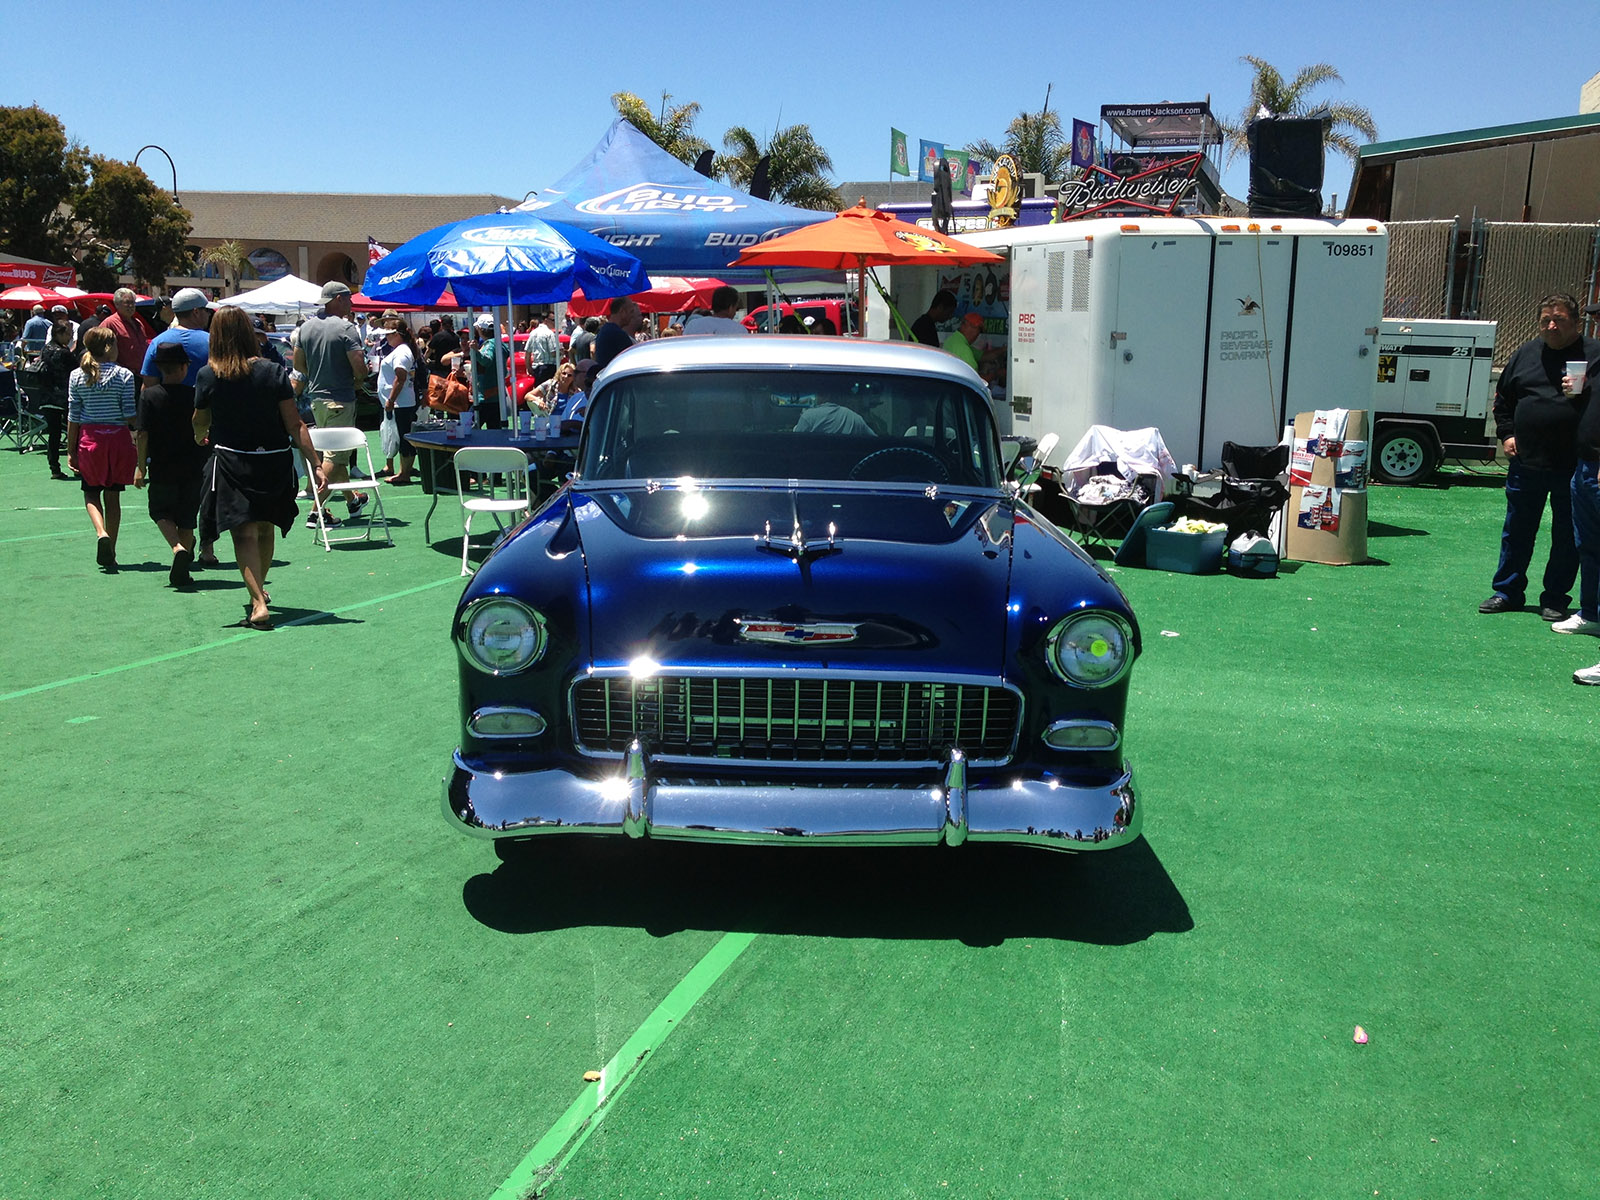 Classic At Pismo Beach Car Show Award Winners - Voss chevrolet car show